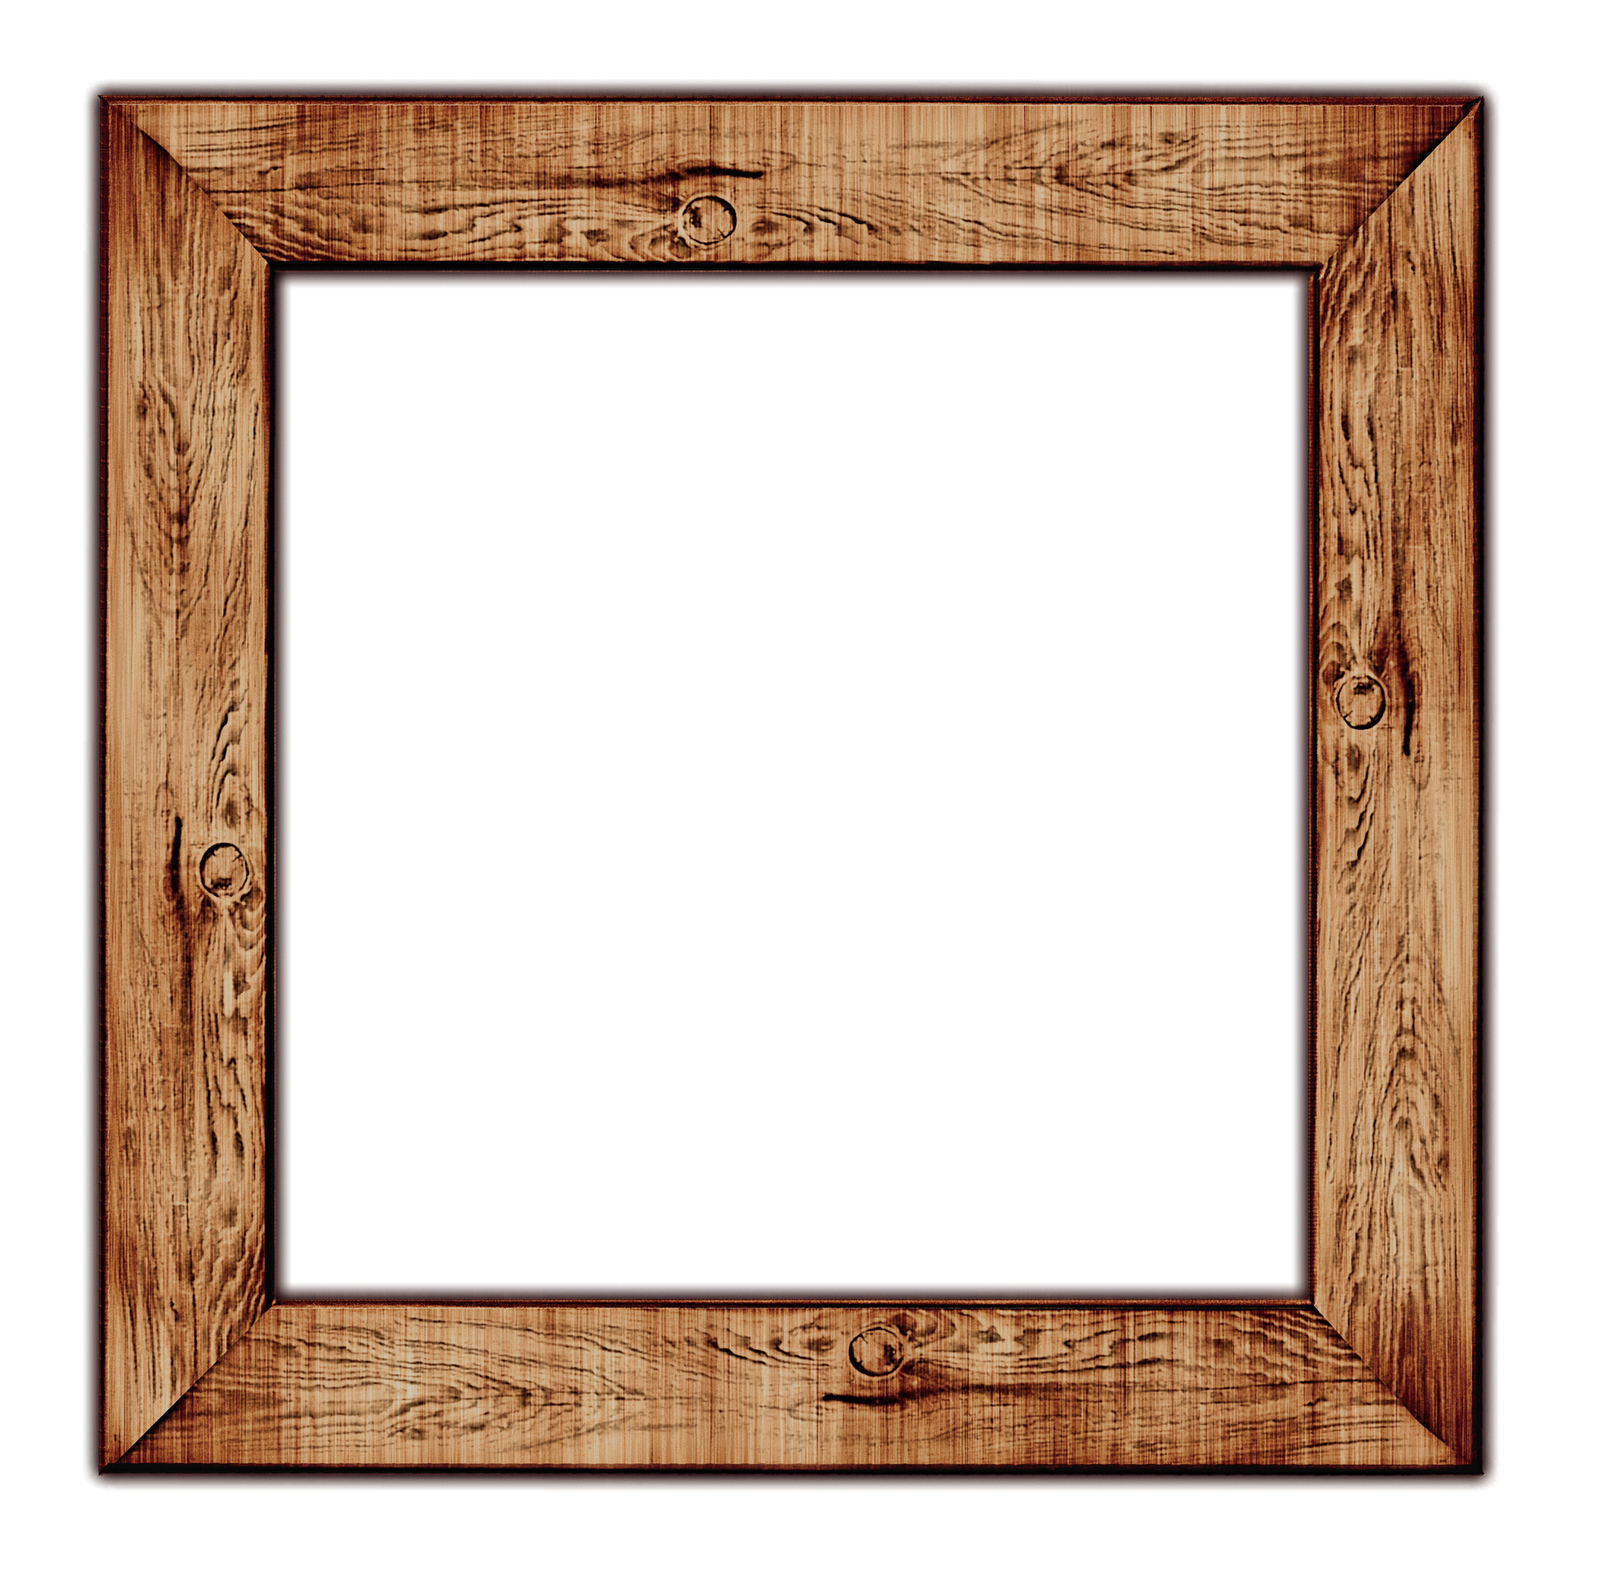 Houten Border Rustic Wood Frame Png Rustic Wood Border Hasshe